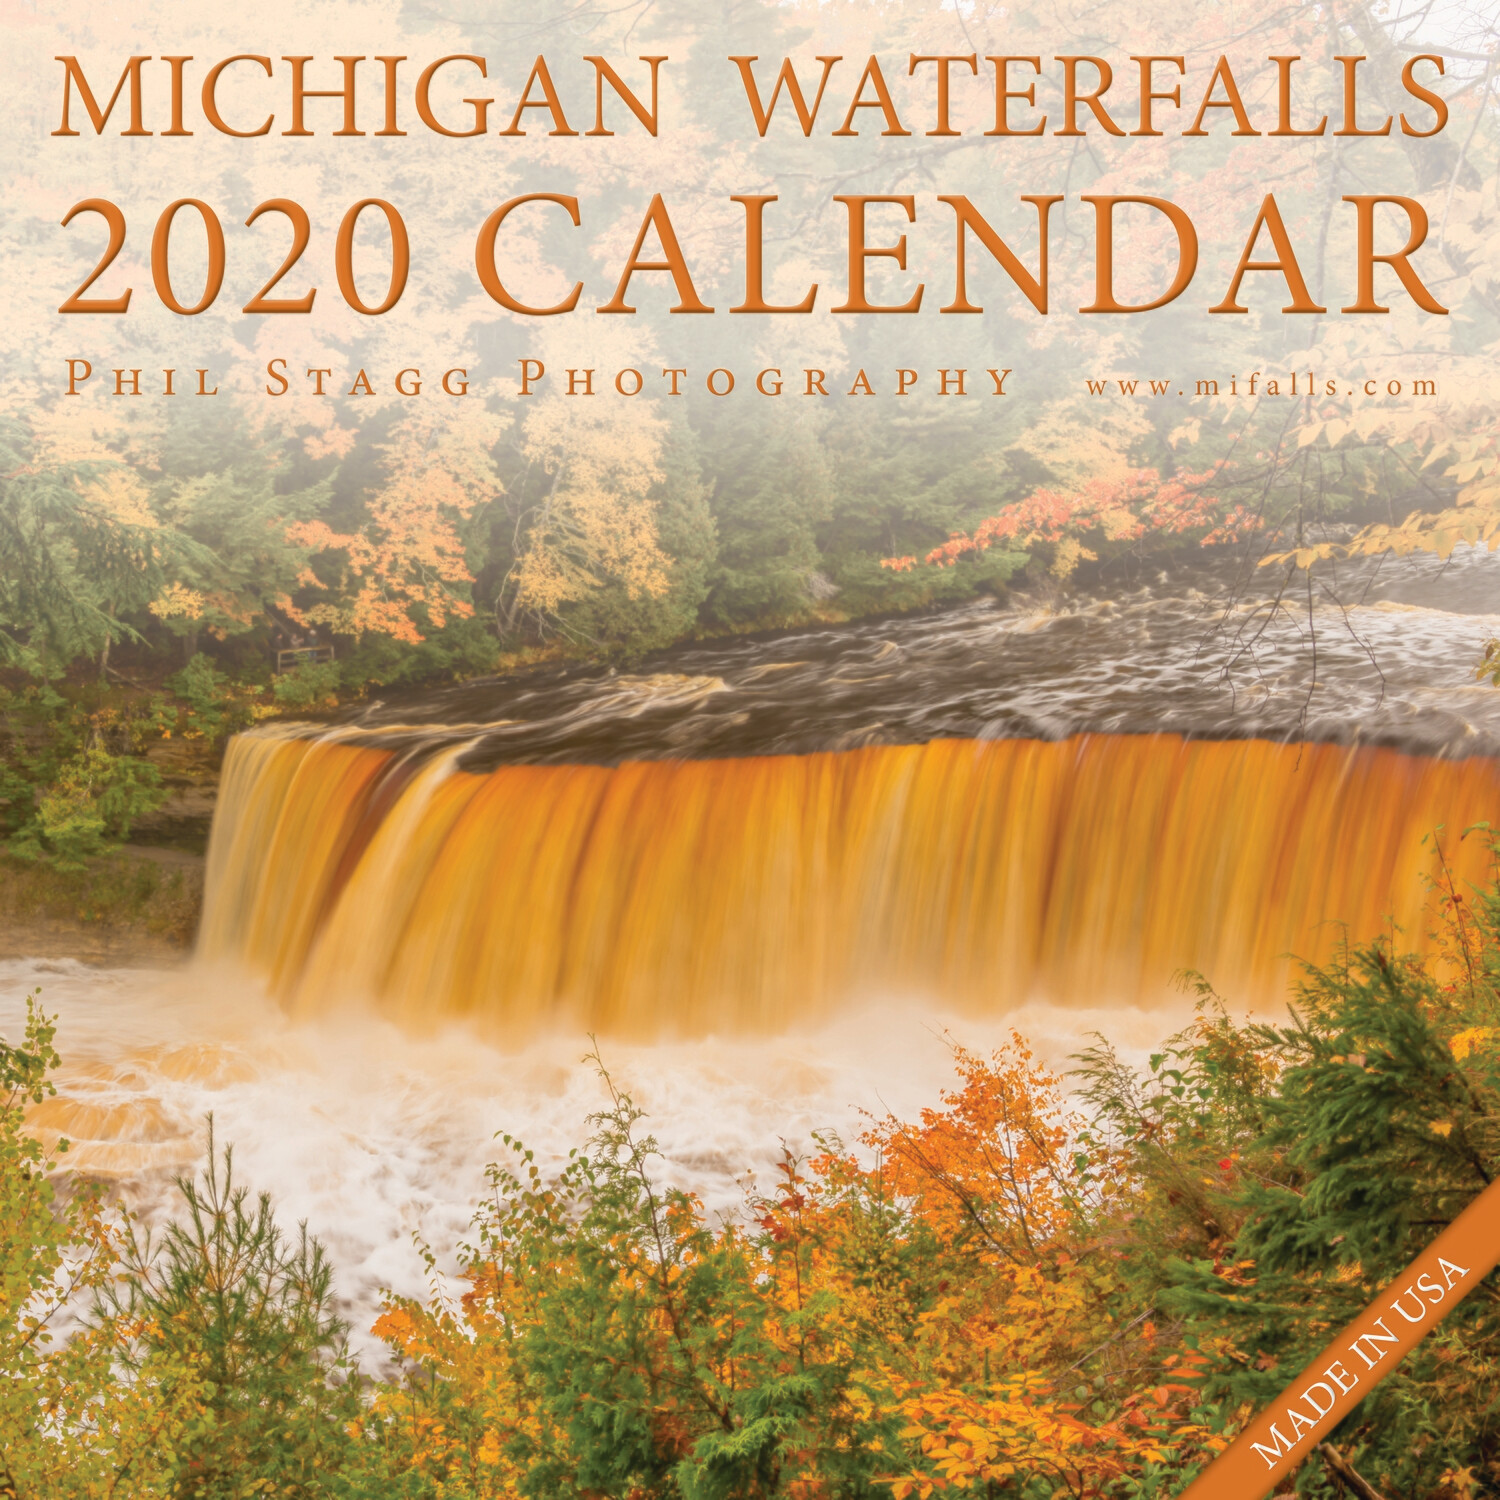 Michigan Waterfalls 2020 Calendar